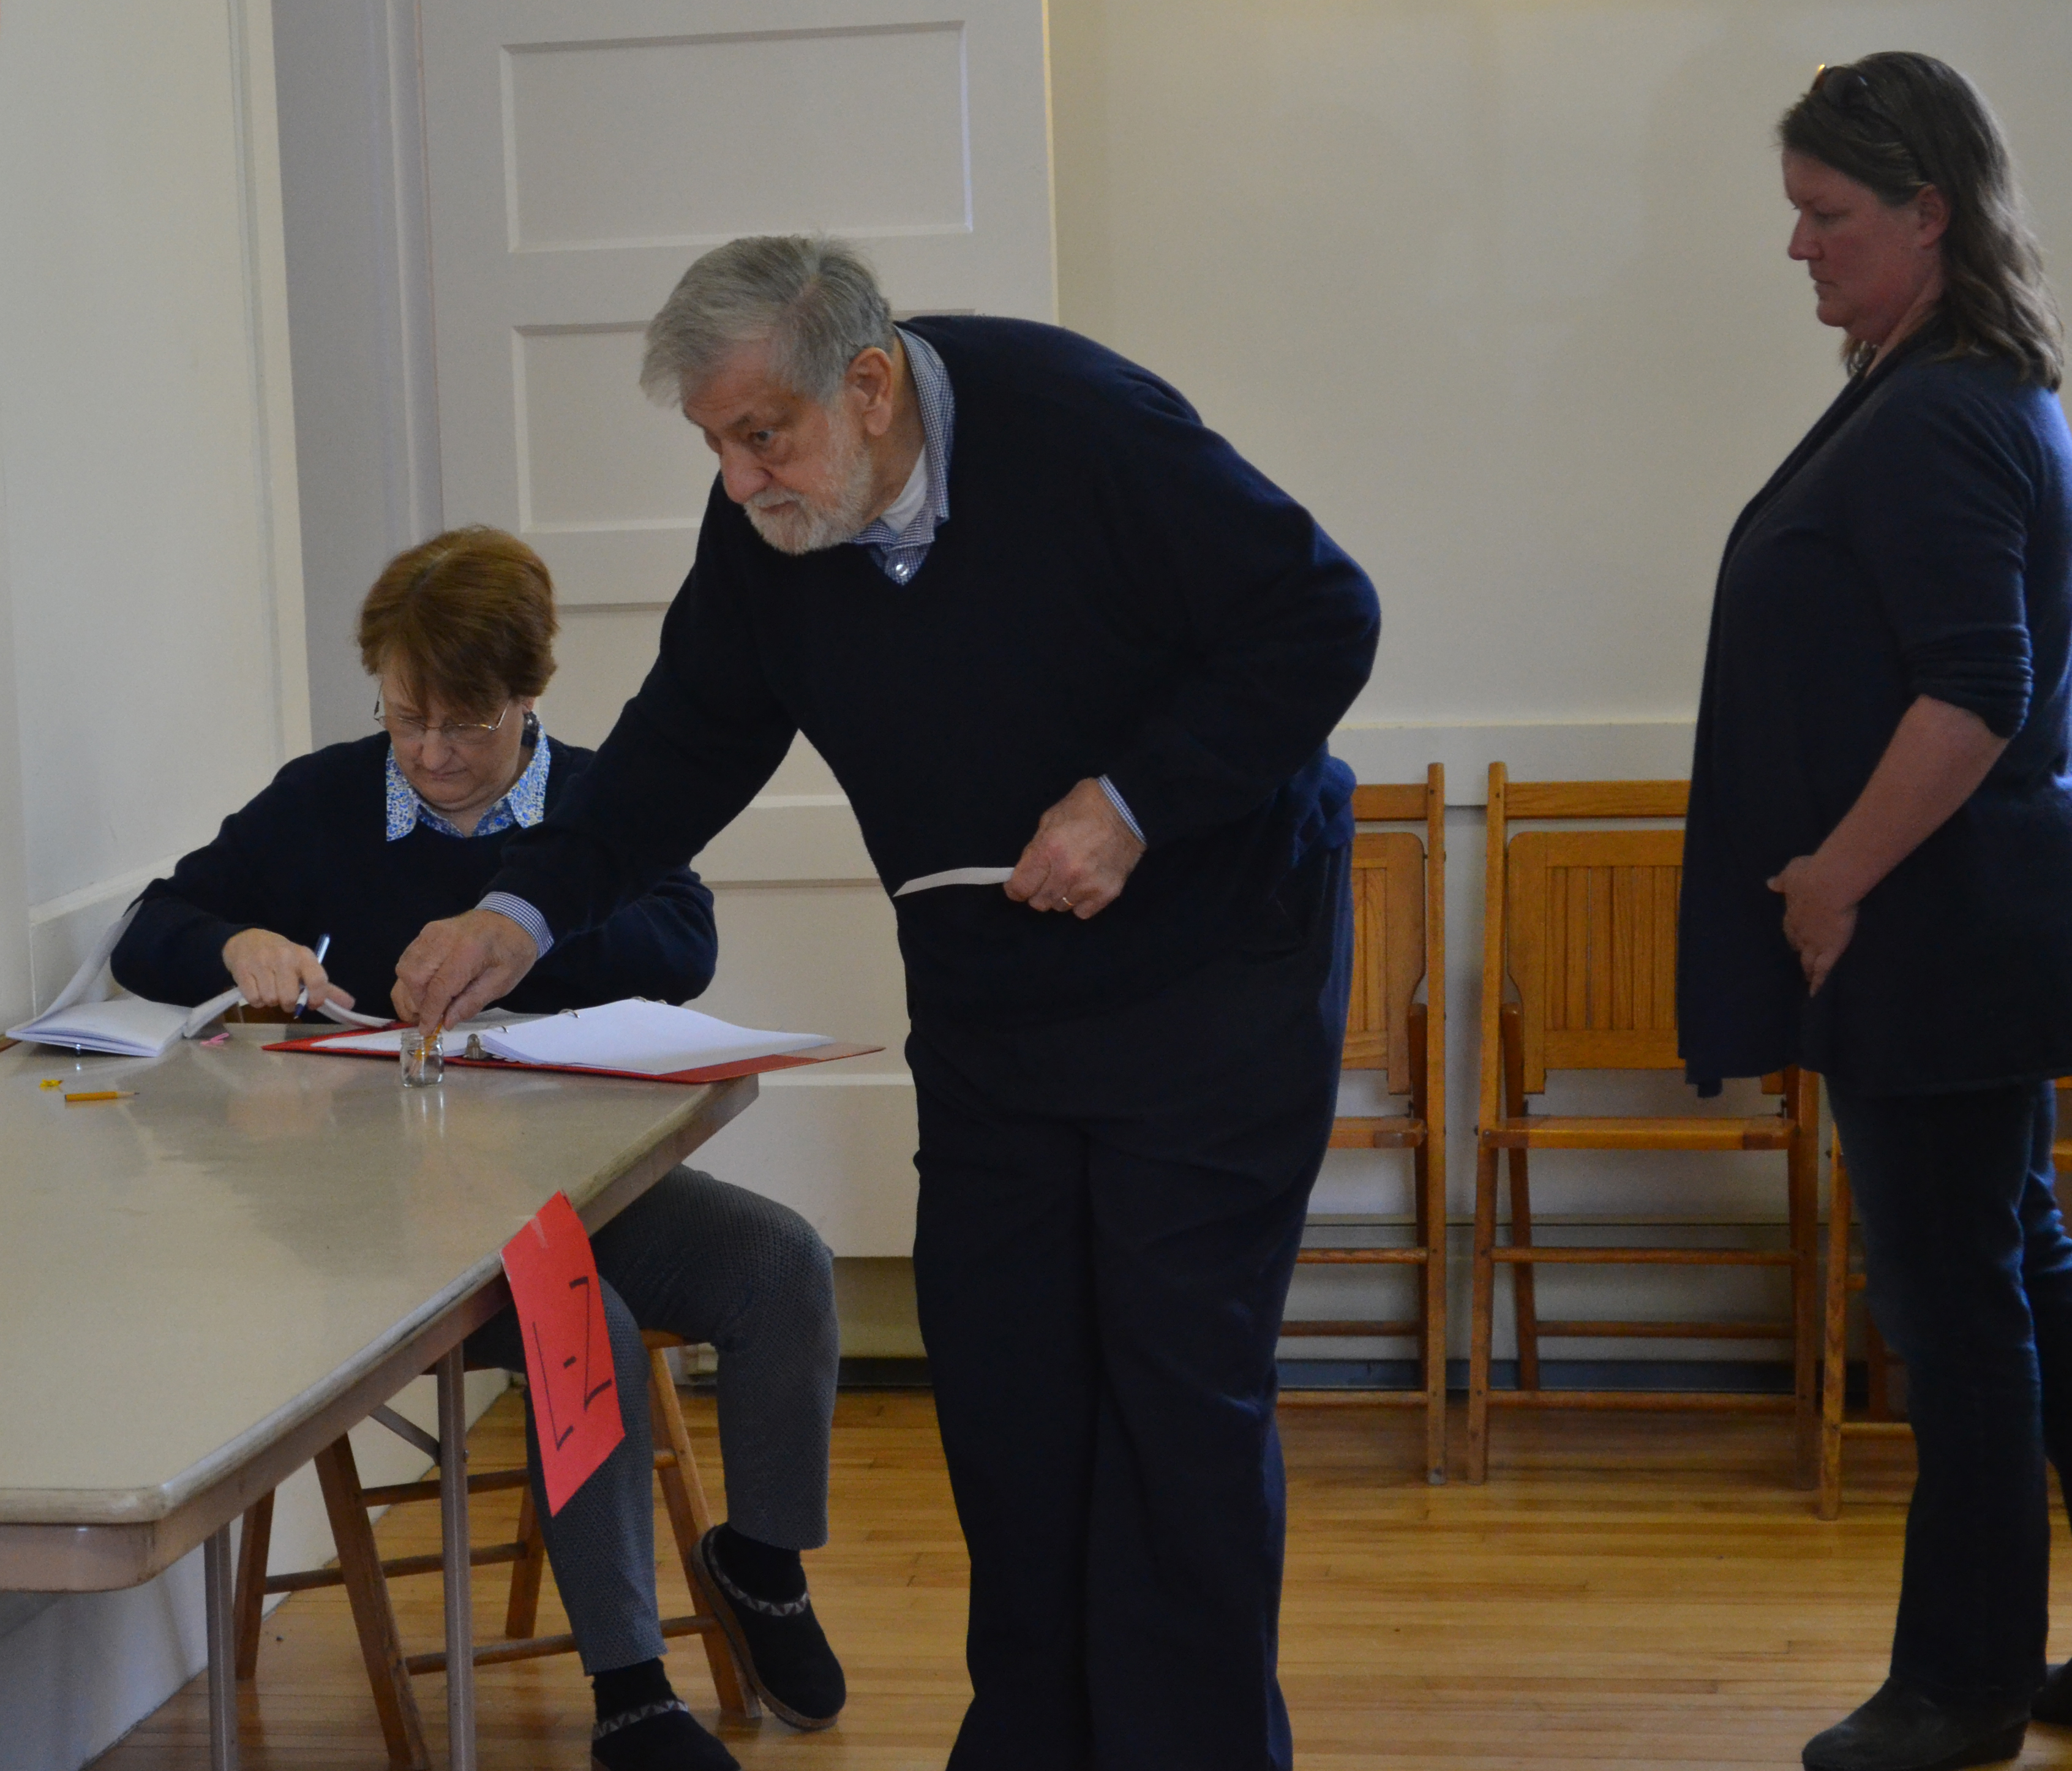 Edgecomb Board of Selectmen Chair Jack Sarmanian votes by secret ballot on an education budget warrant article at the annual town meeting Saturday, May 13, with new Edgecomb School Committee member Heather Sinclair next in line. (Abigail Adams photo)